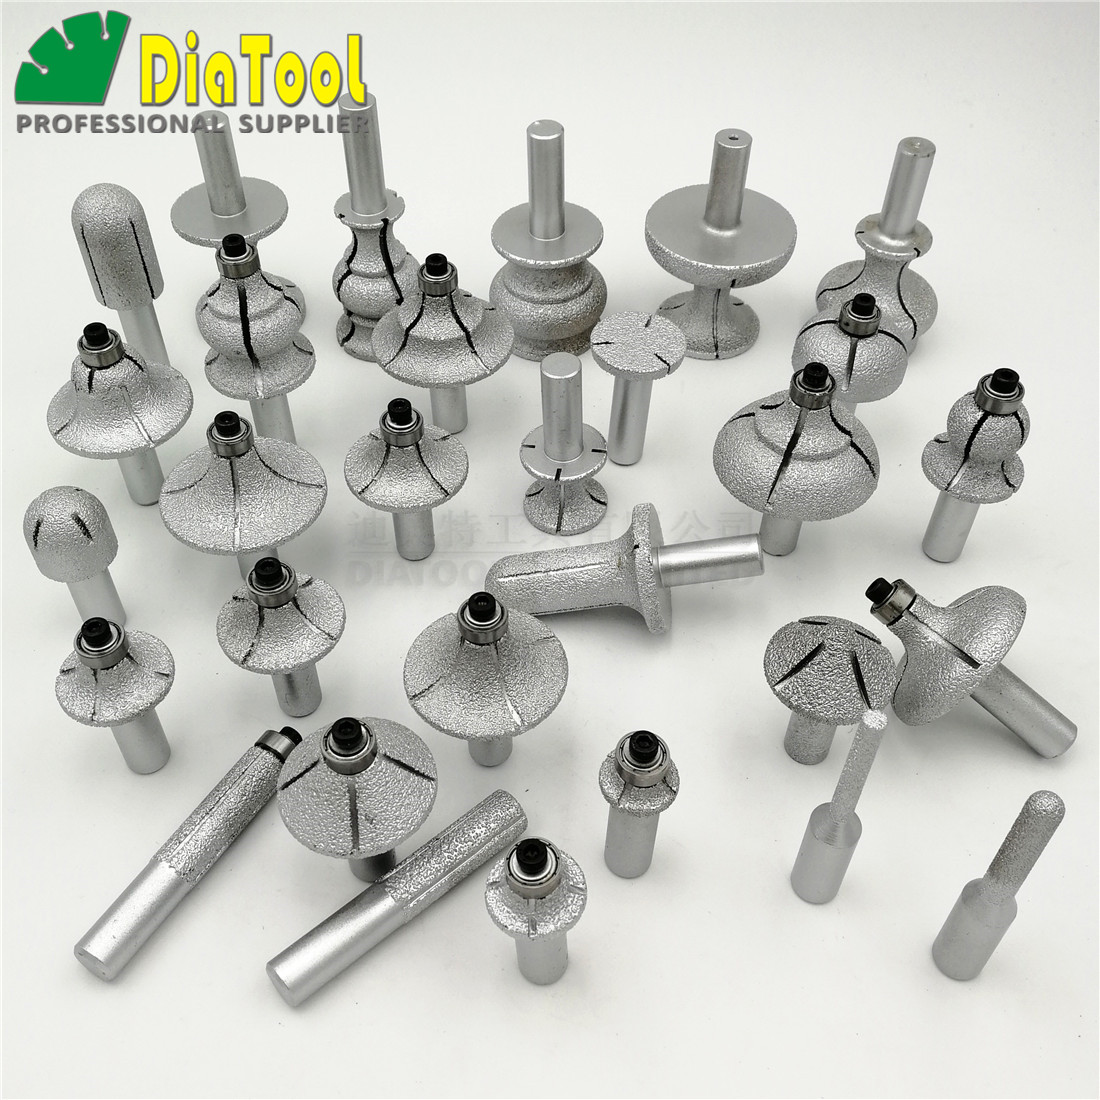 Hearty Shdiatool 1pc Vacuum Brazed Diamond Router Bits With 1/2 Shank For Stone Router Cutter For Granite & Marble In Pain Abrasive Tools